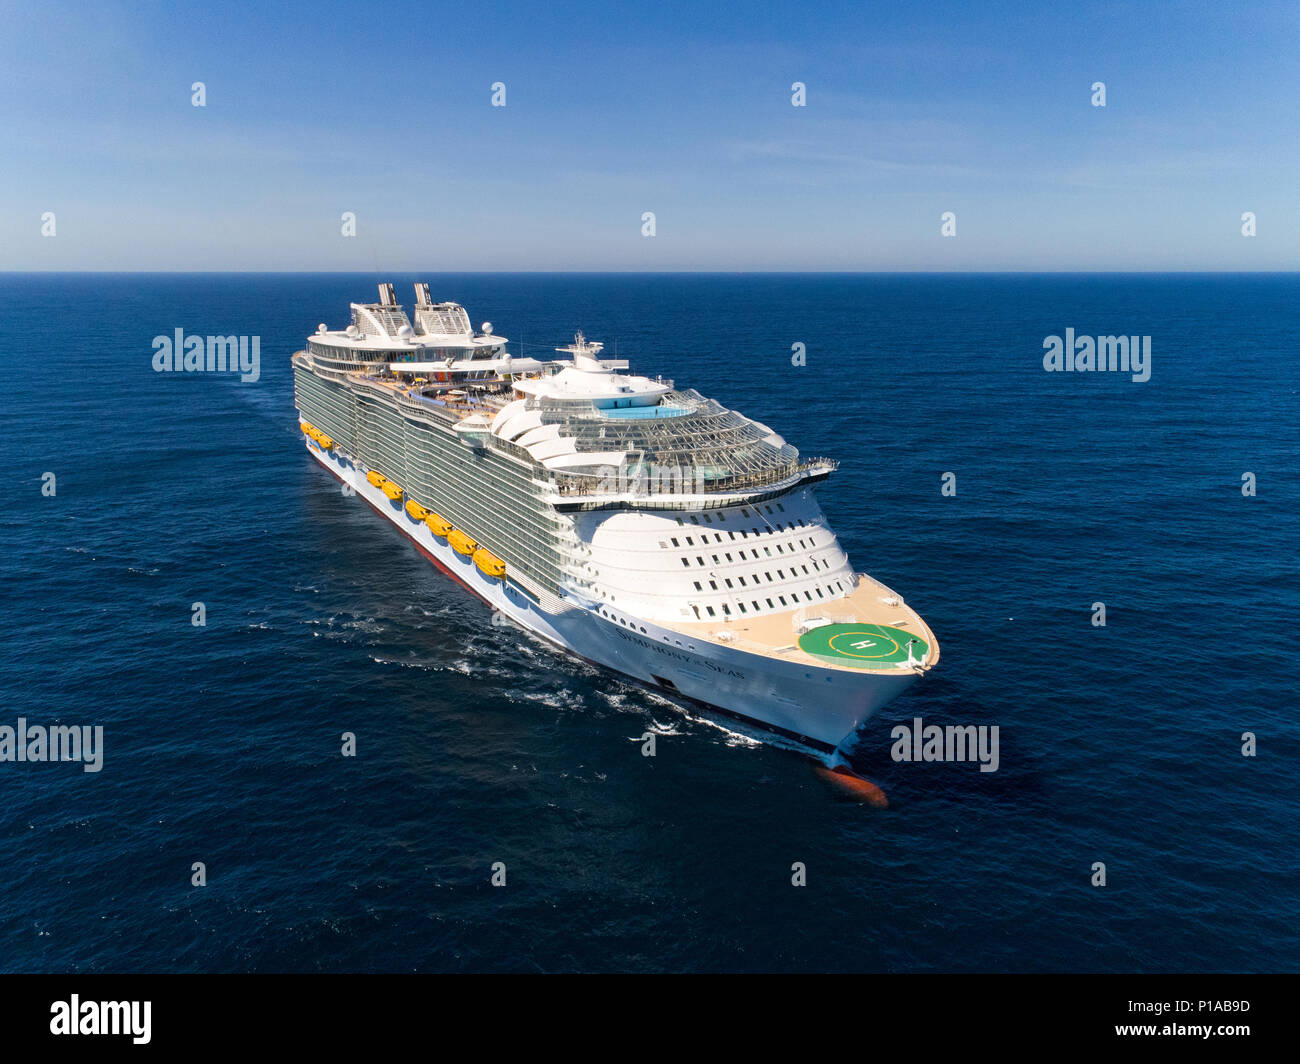 Spain: at sea, in the middle of the Atlantic Ocean. 2018/03/26. Maiden voyage of the Symphony of the Seas, the world's biggest cruise ship delivered b - Stock Image